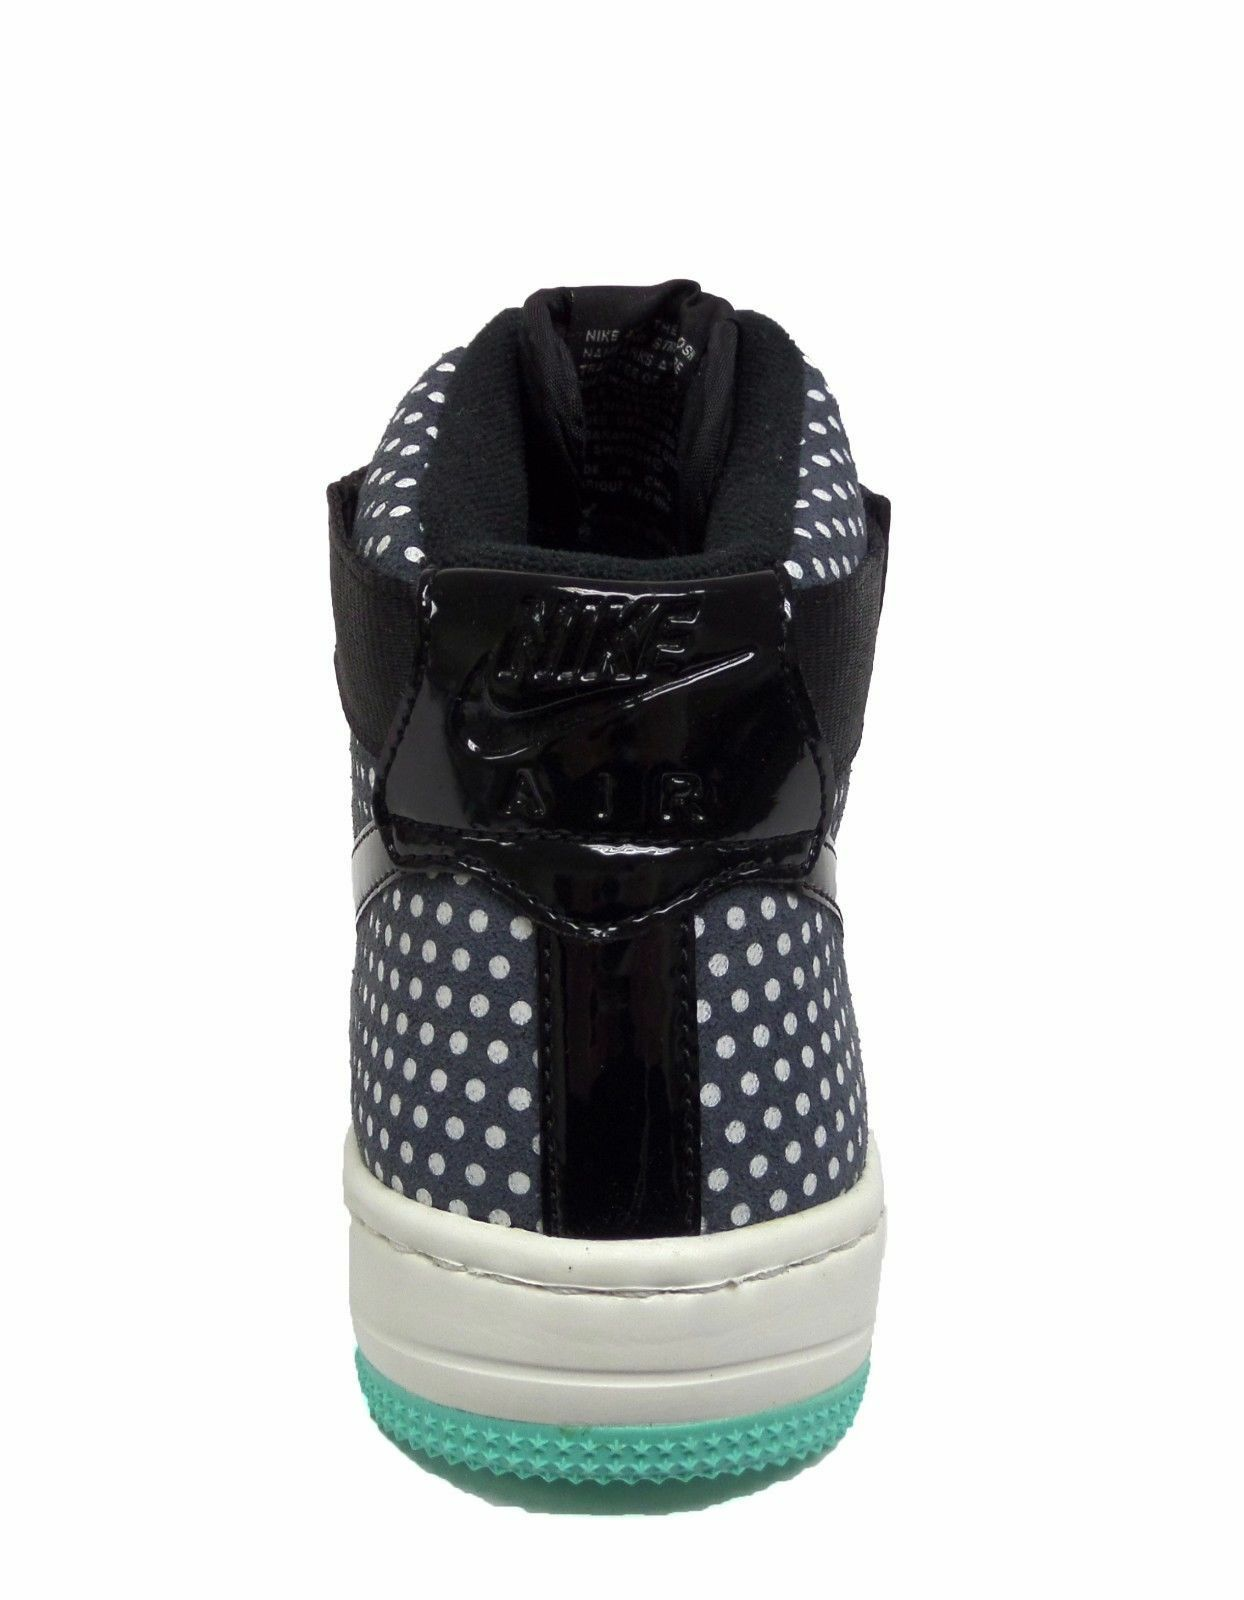 Nike WOMEN'S AIR FORCE FORCE FORCE 1 Ultra Force Mid Black Sail SIZE 6 BRAND NEW 1604bf